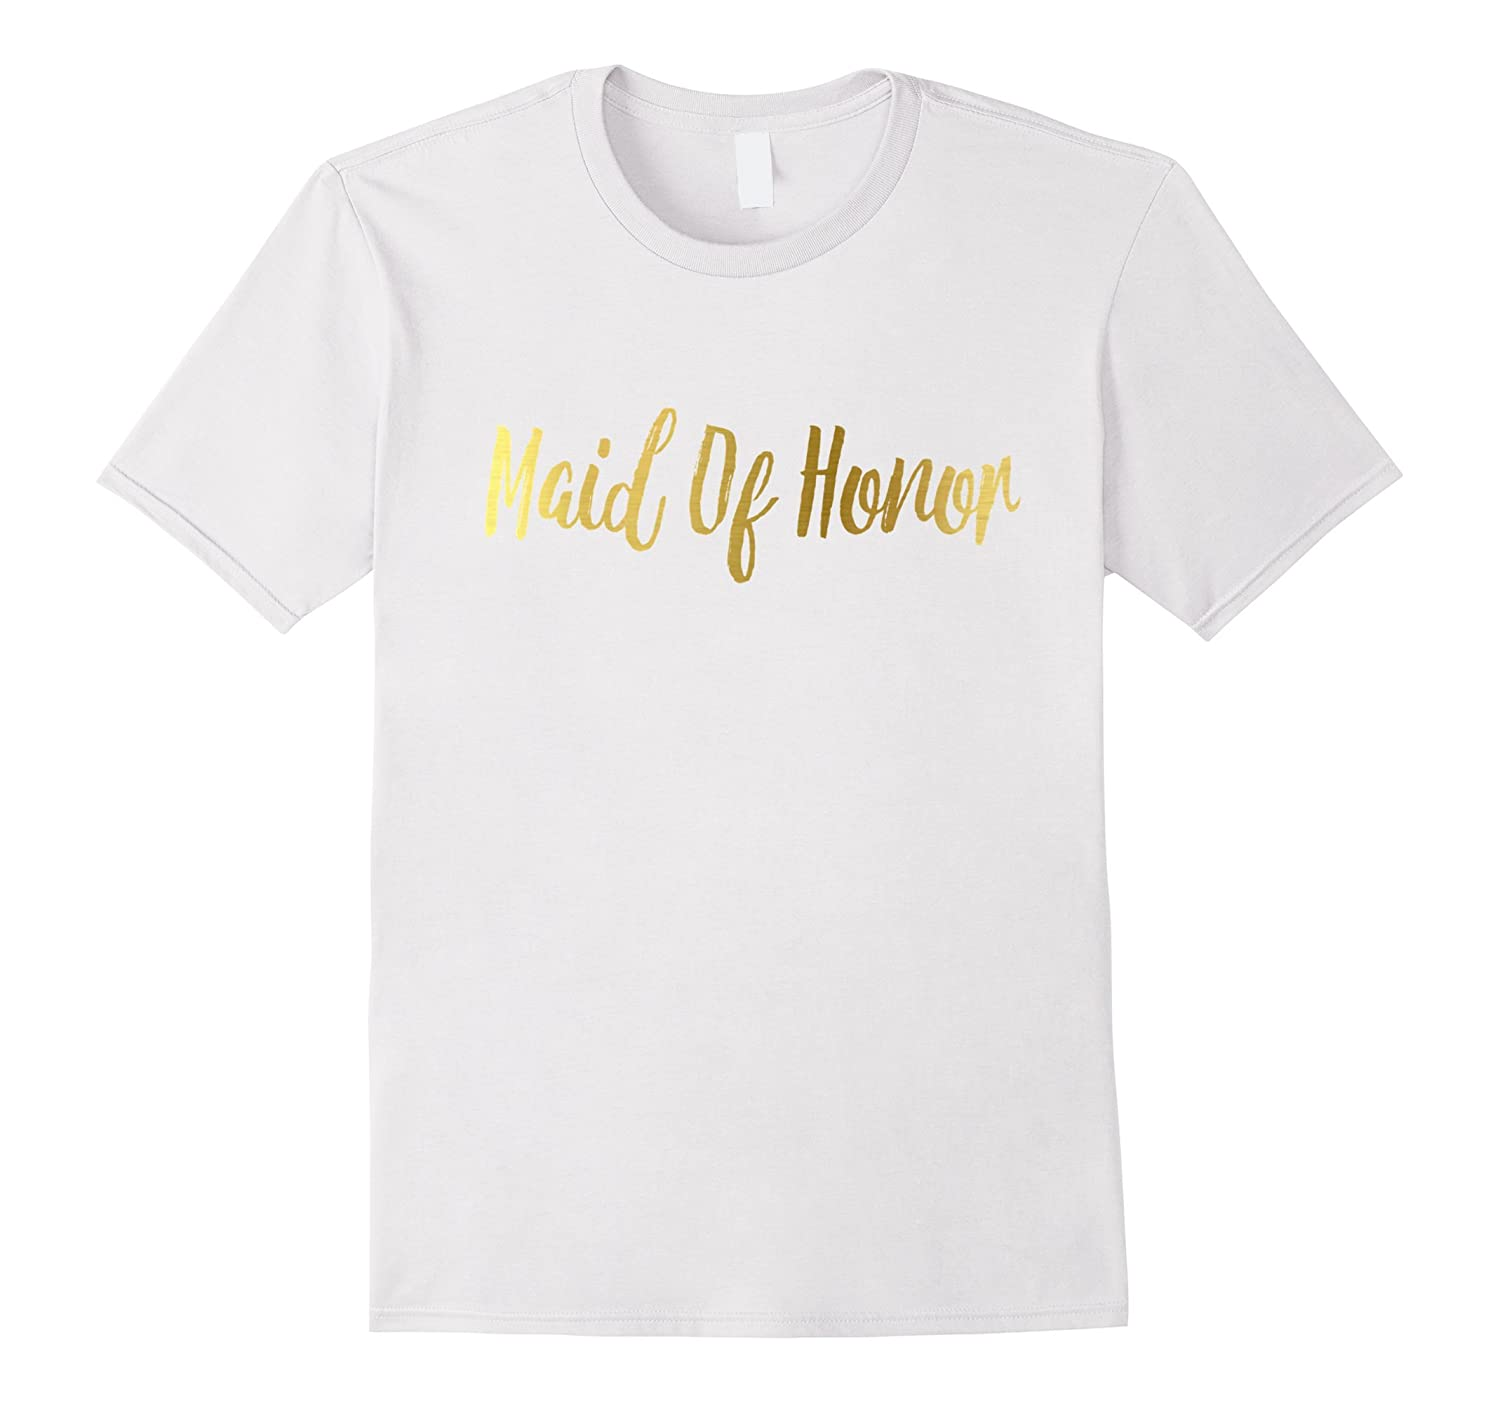 Maid of Honor Shirt Matching Gold Wedding Bride Groom-TJ